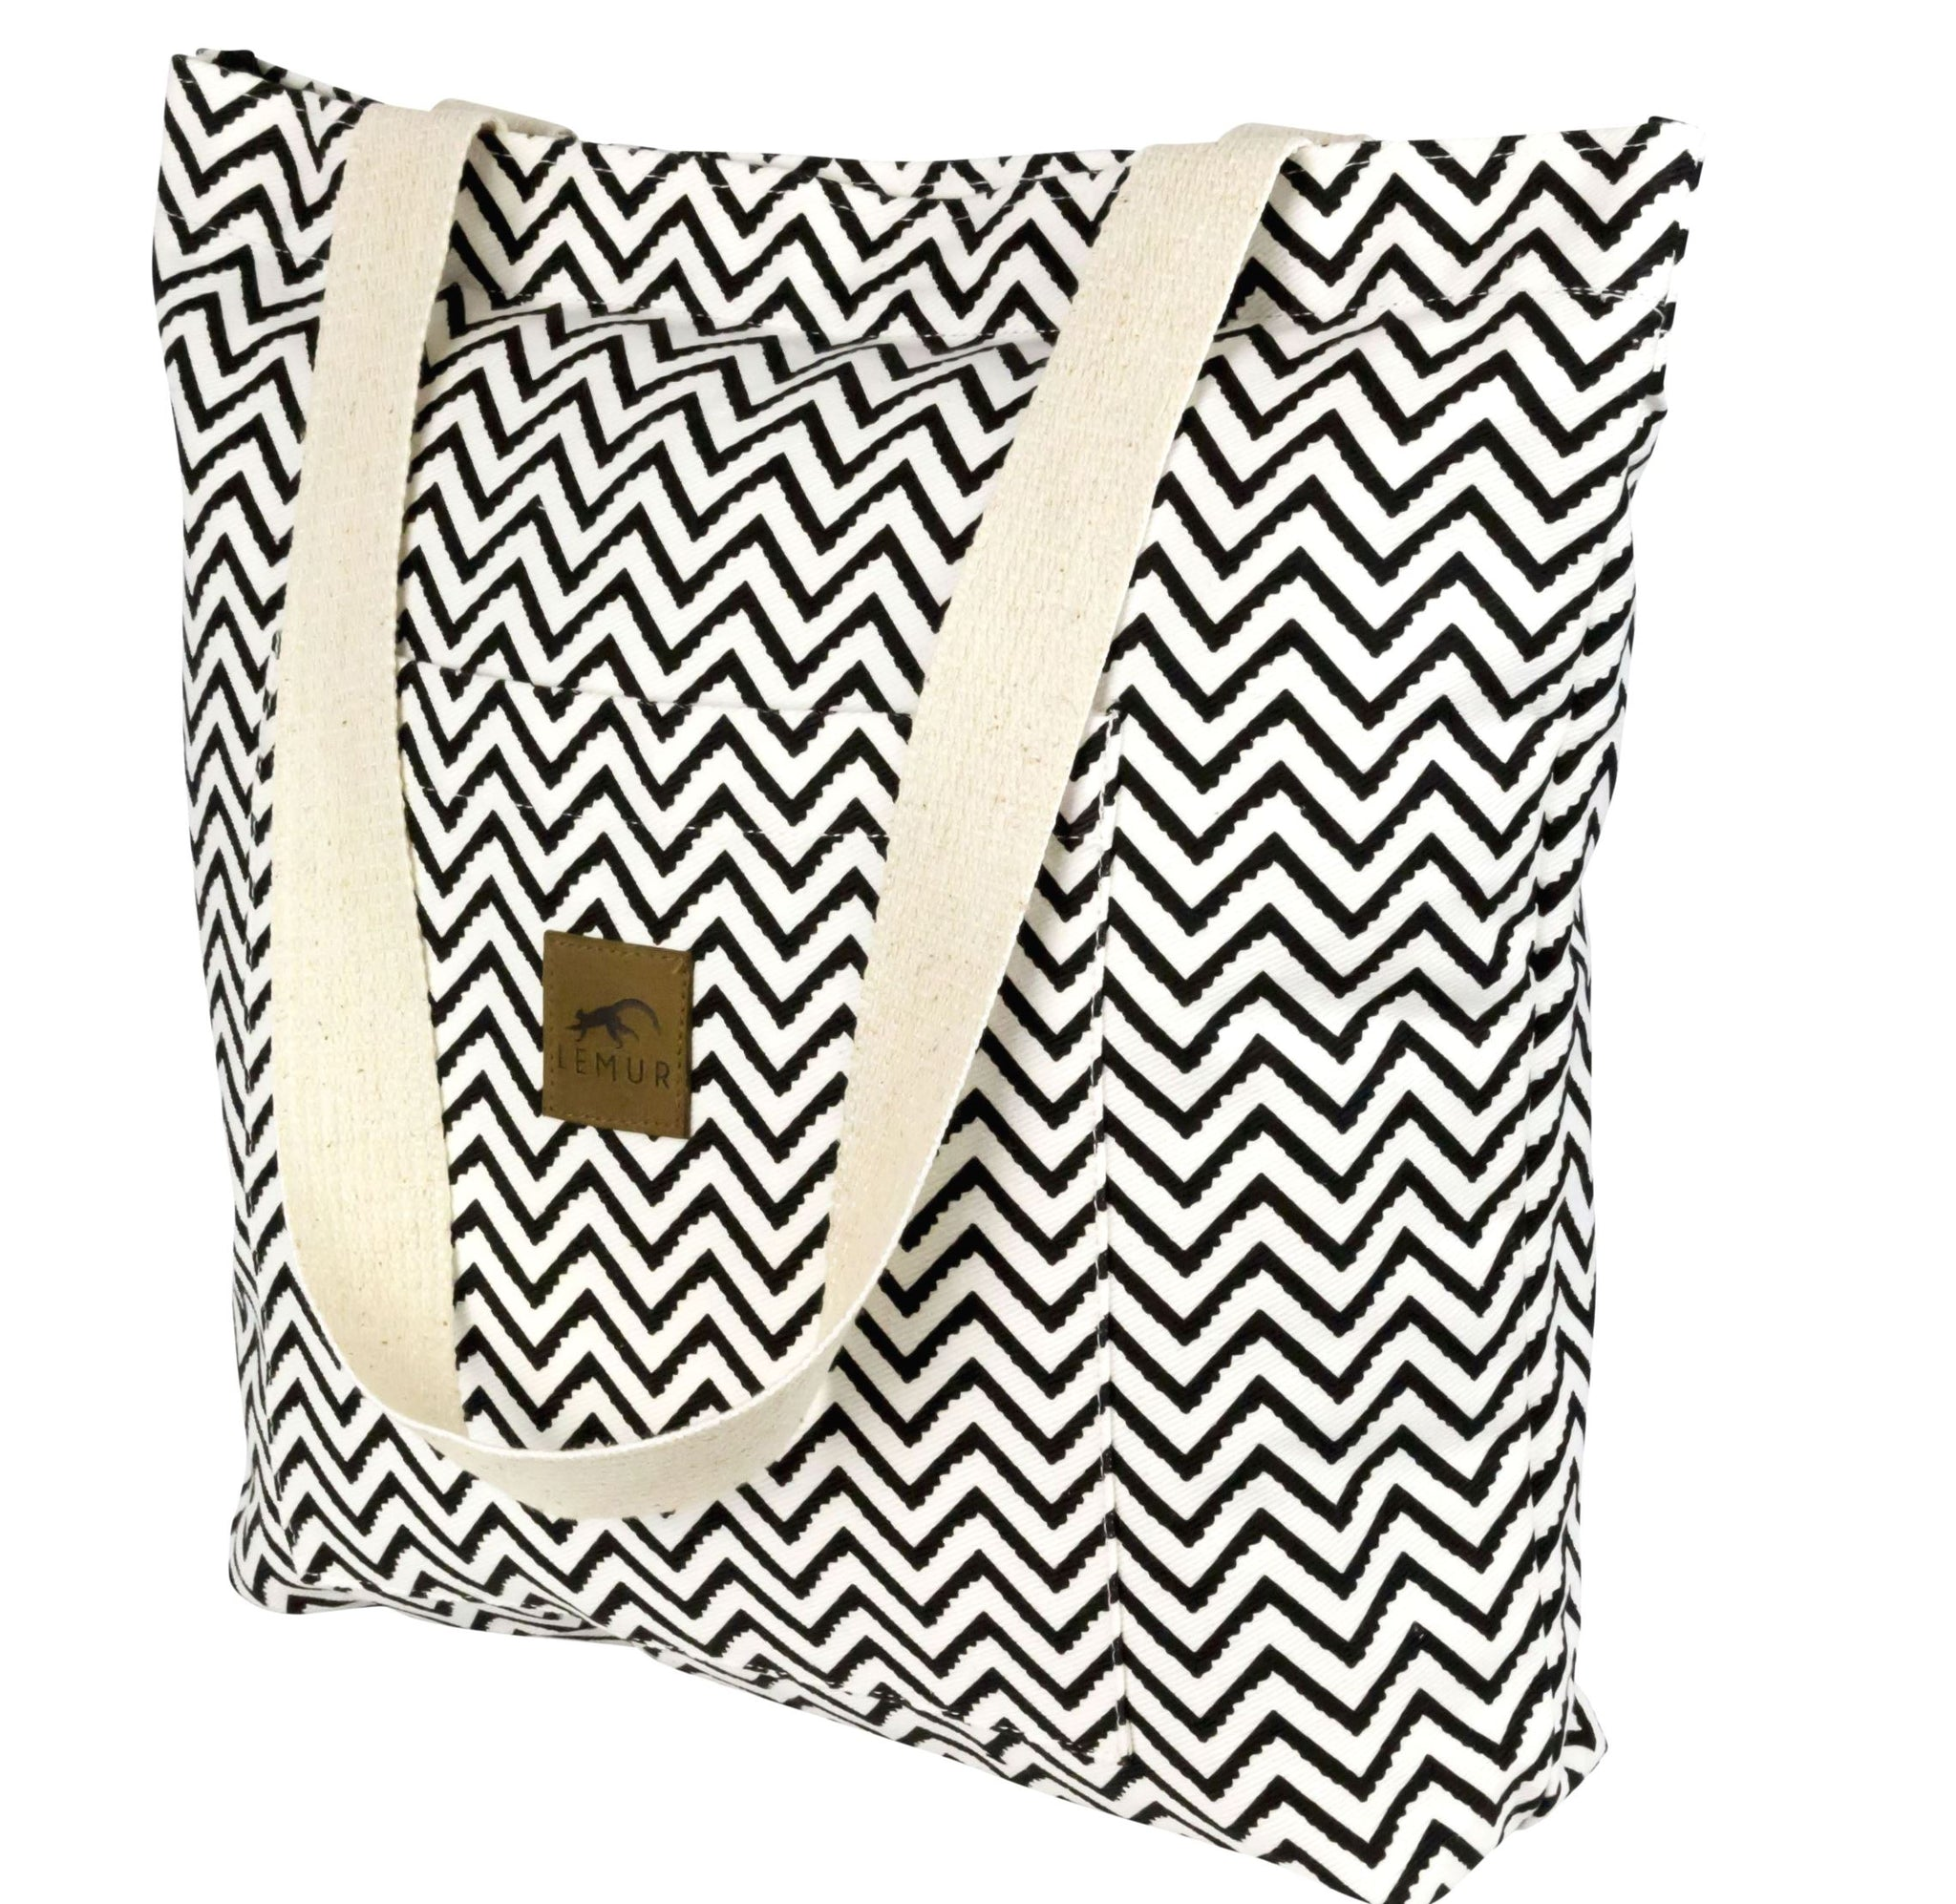 Zig Zag Shopping Tote Bag